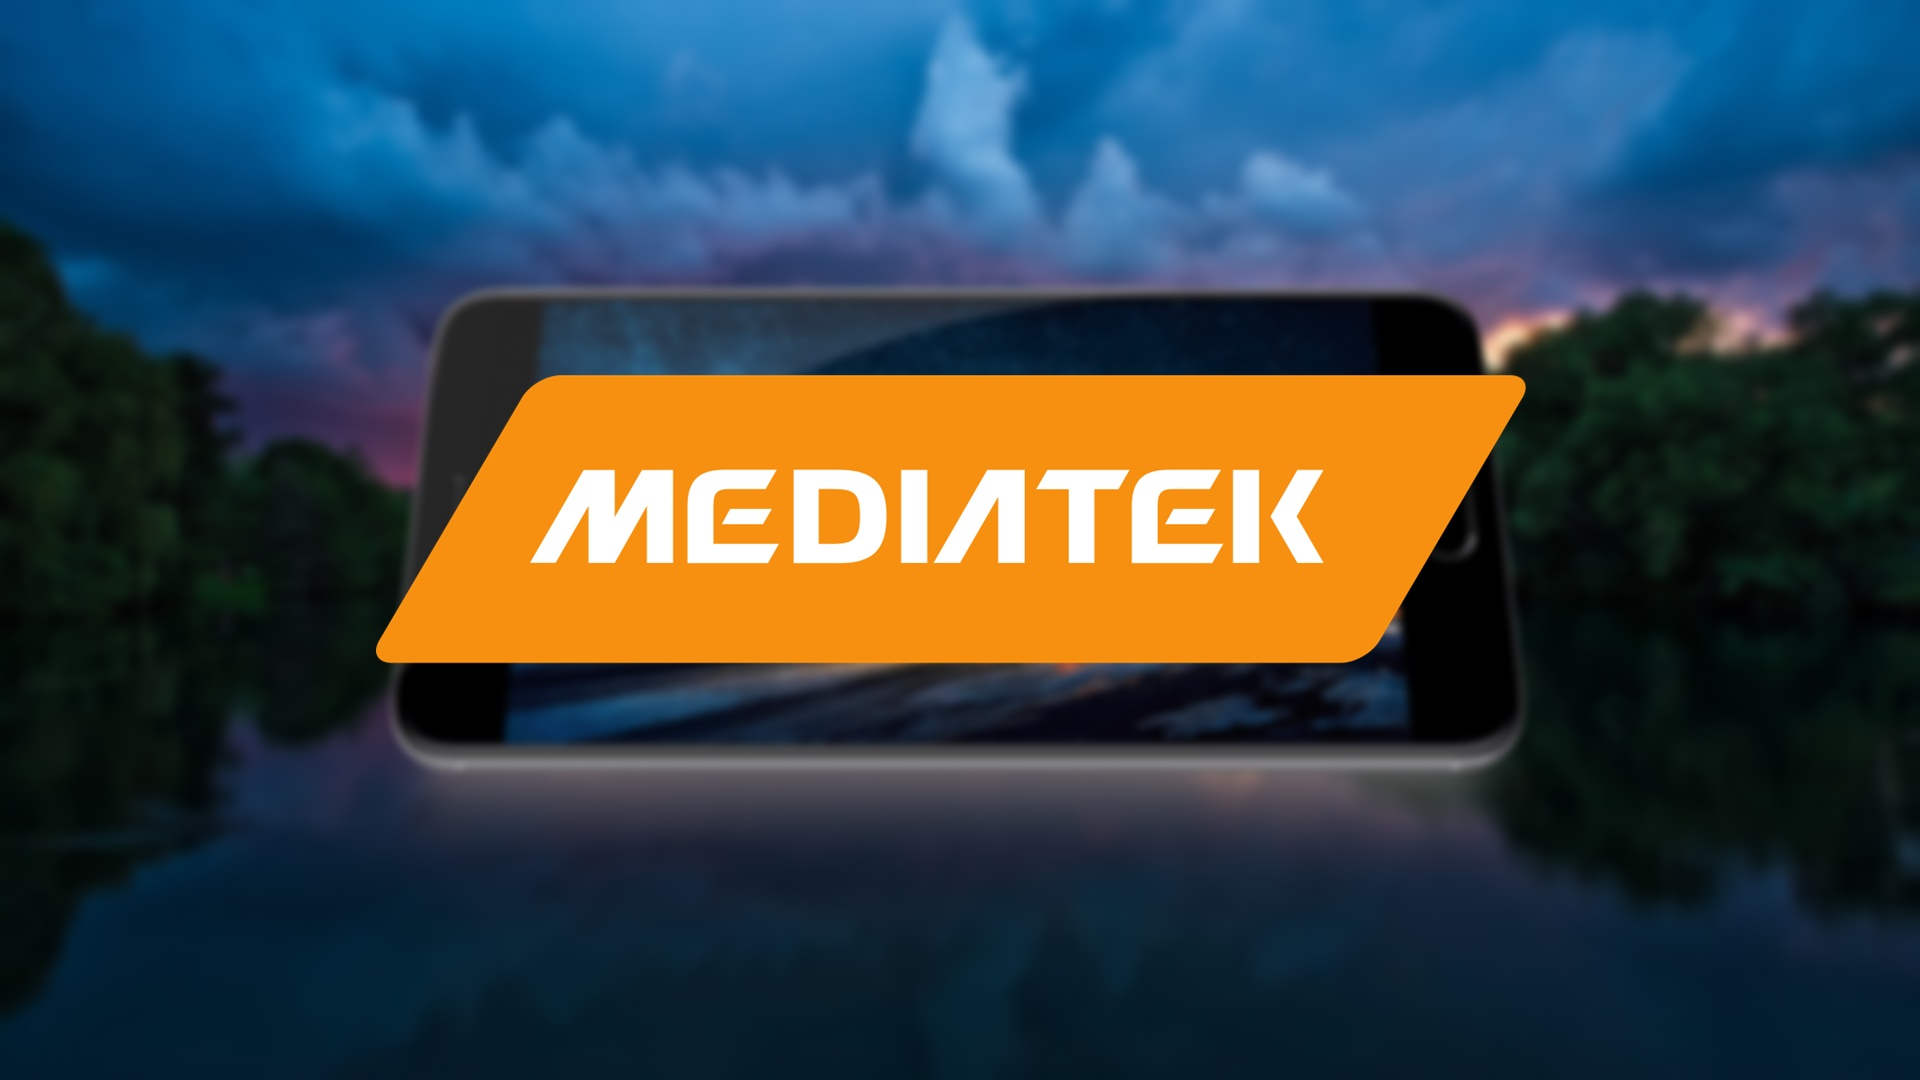 MediaTek talked about